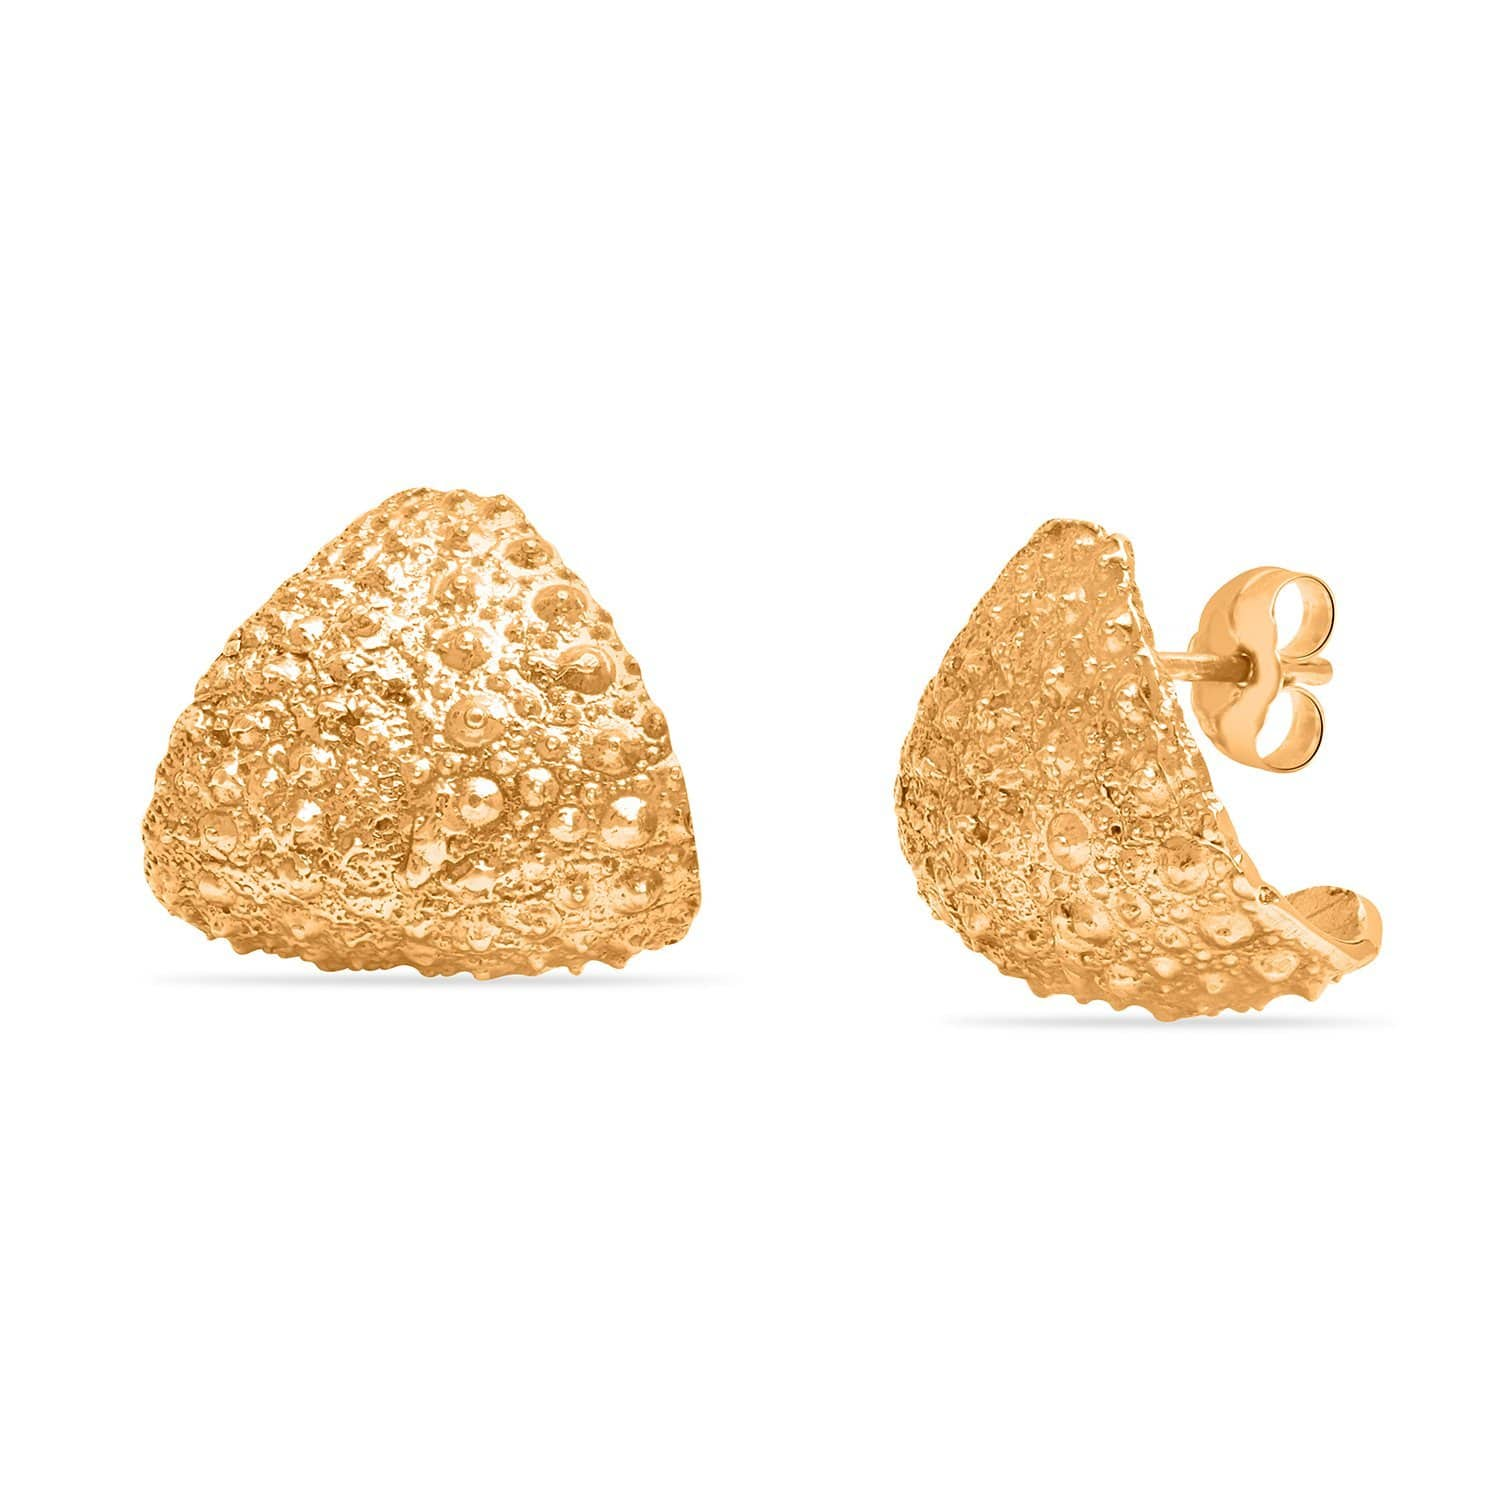 Sea Urchin Texture Gold Earrings Caitlin Nicole